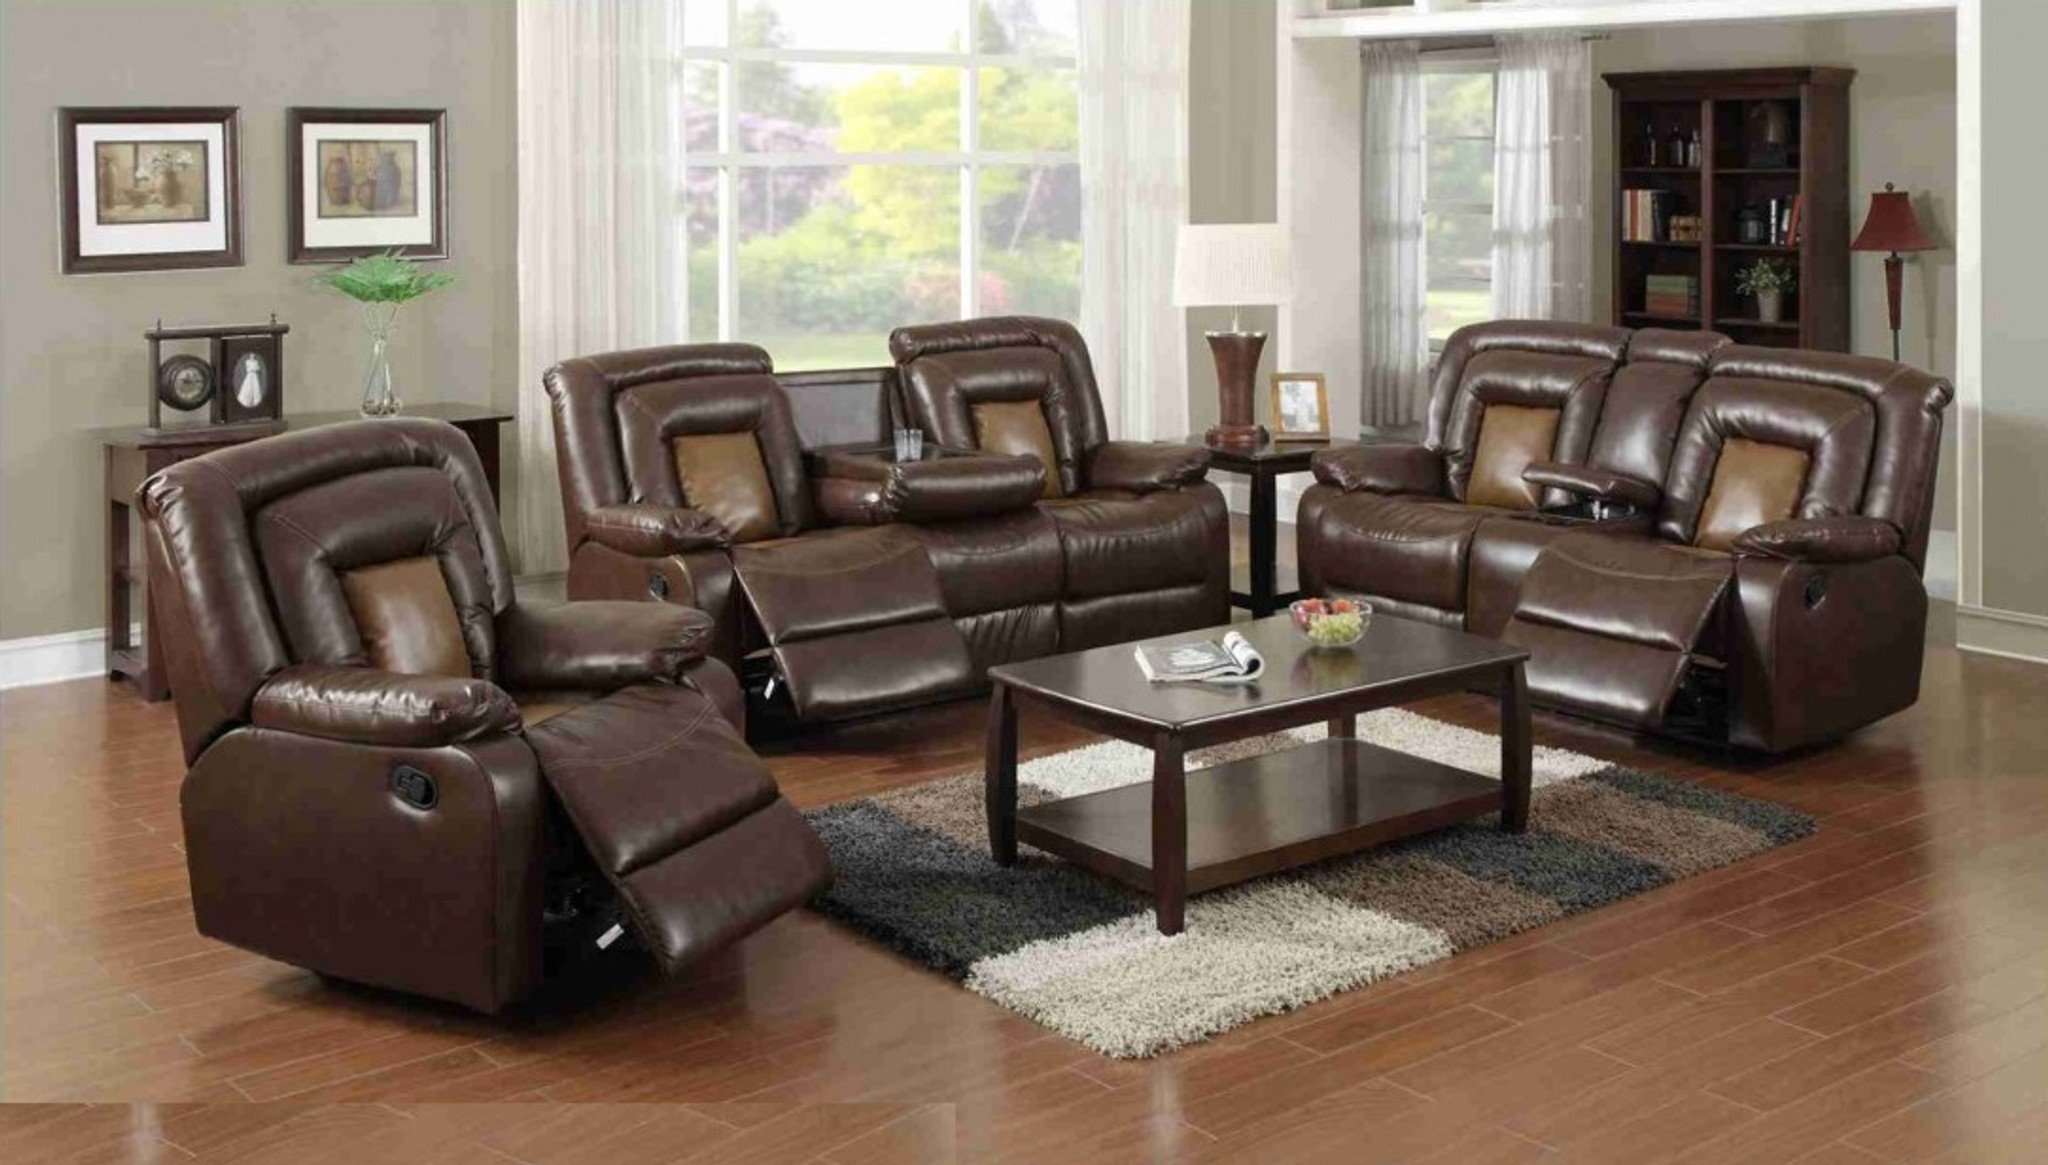 recliner living room set how to decorate a small traditional 3 pcs 2 tone sofa loveseat single